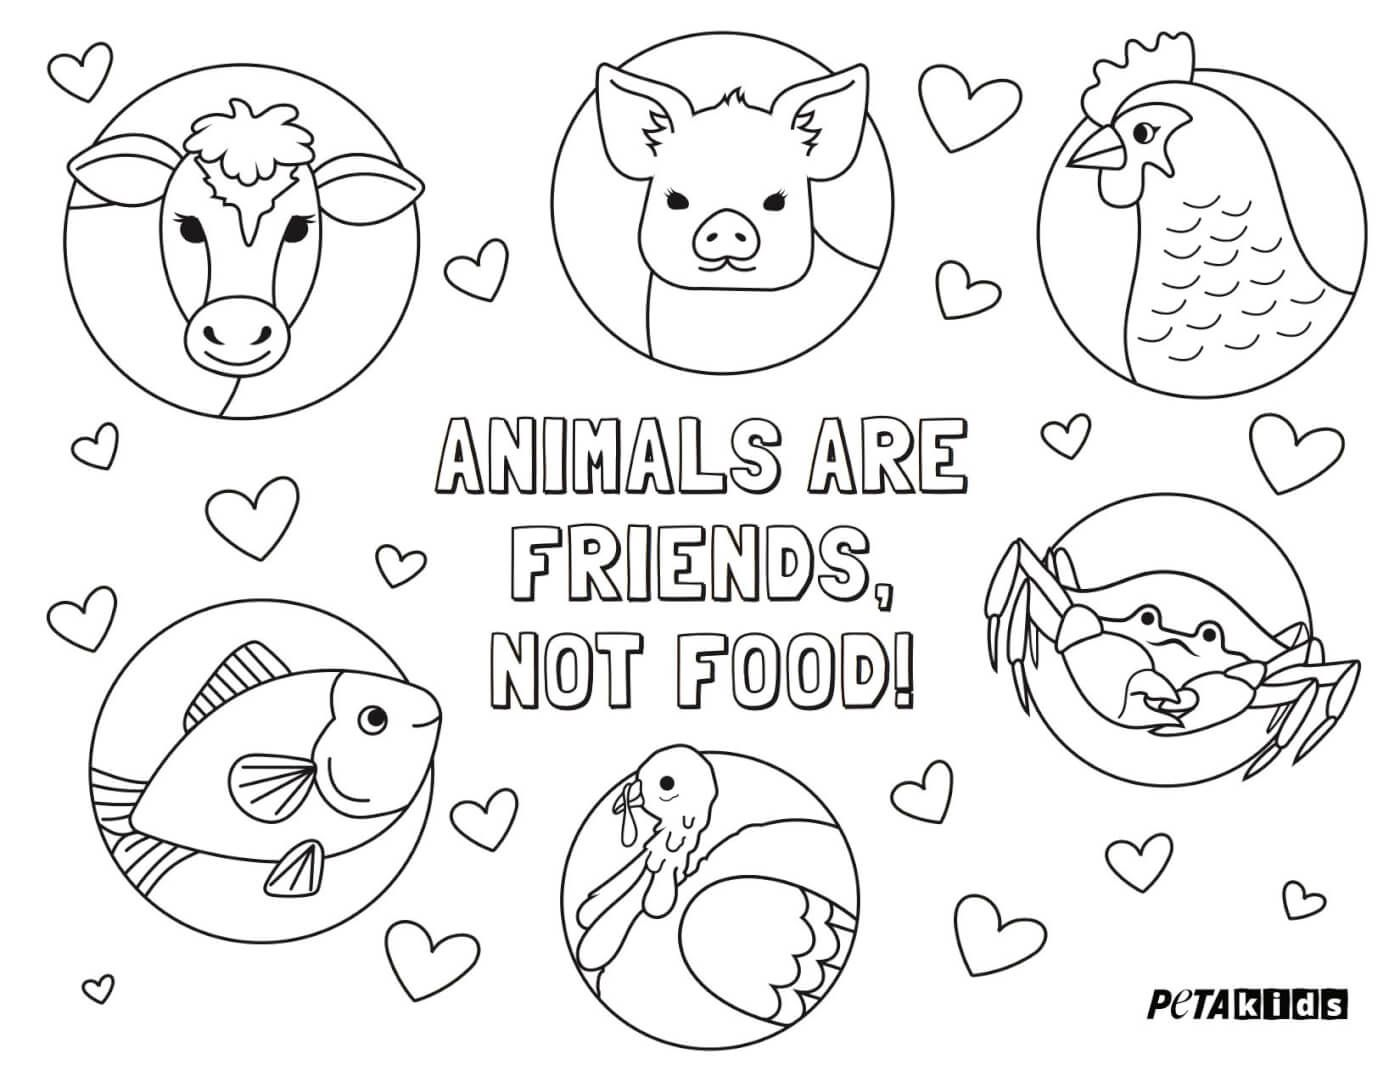 Show Everyone That 'Animals Are Friends, Not Food' With